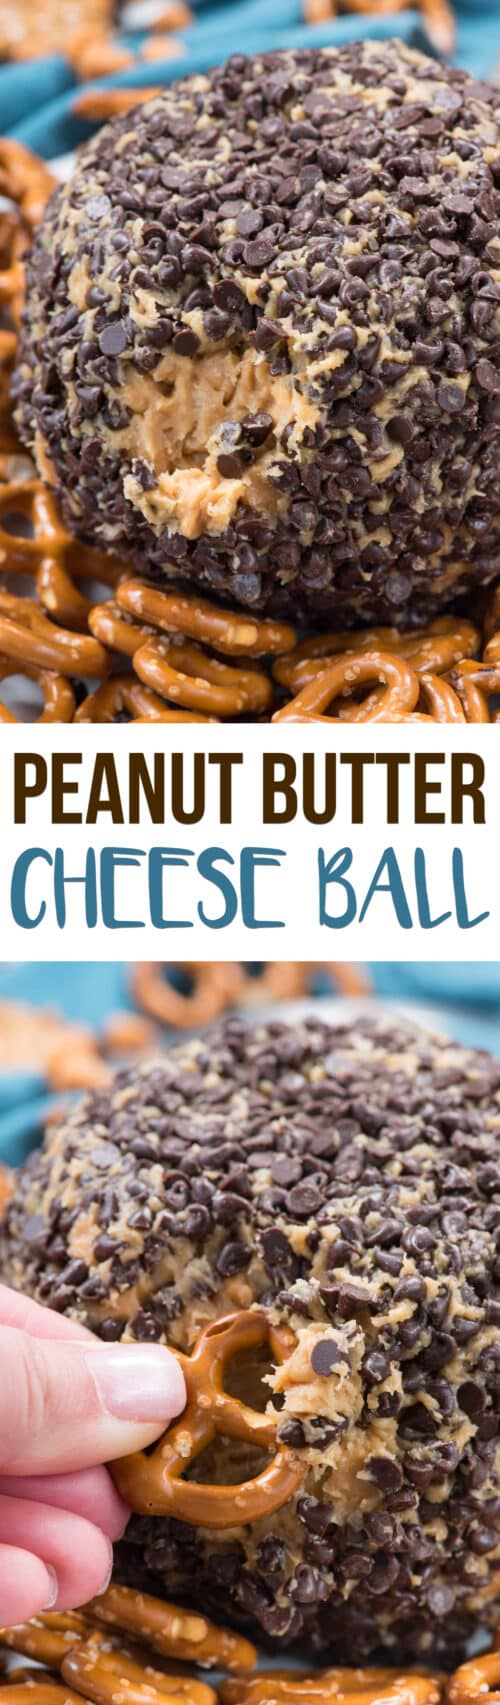 collage with two peanut butter cheese ball photos